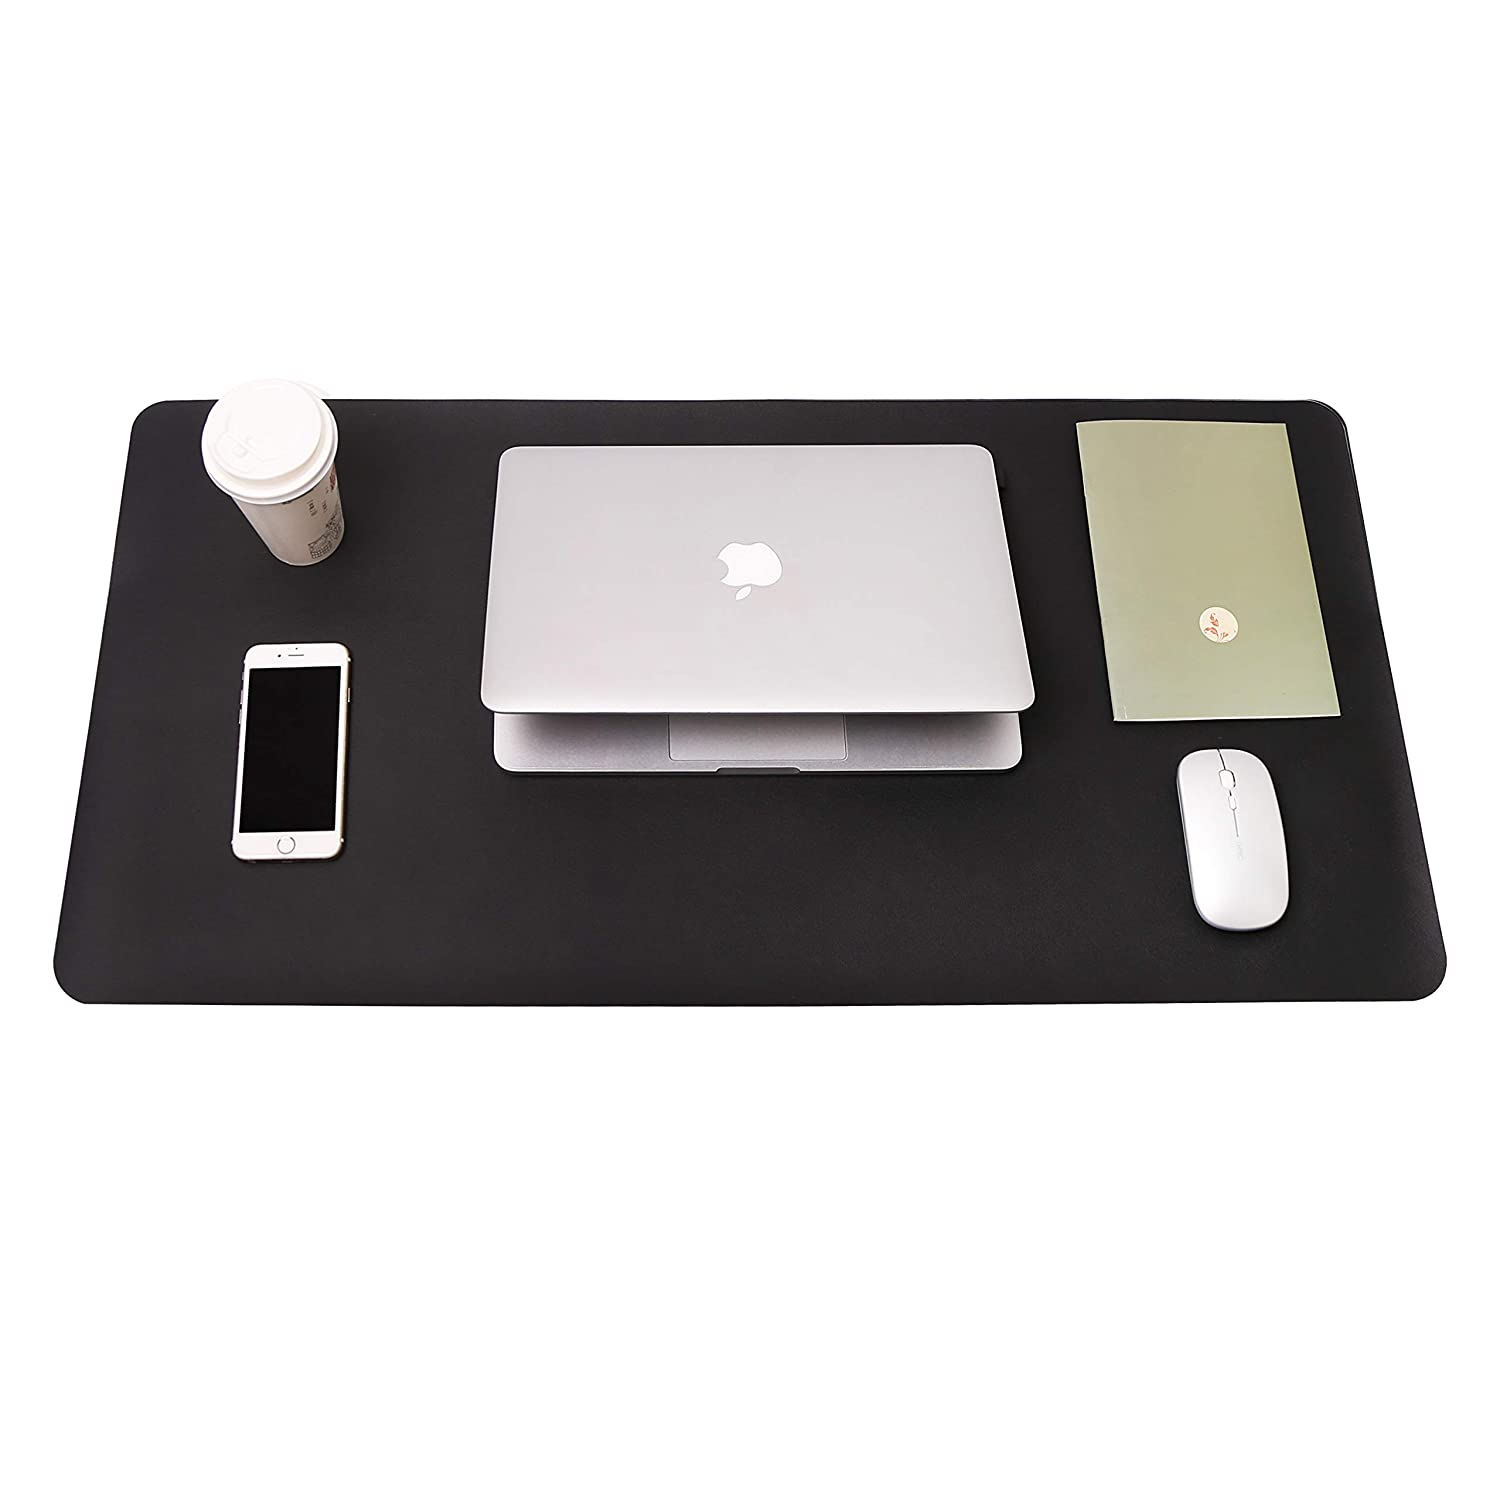 "Writing Desk Pad Protector, YSAGi Anti-Slip Thin Mousepad for Computers,Office Desk Accessories Laptop Waterproof Desk Protector for Office Decor and Home(Black, 31.5"" x 15.7"")"